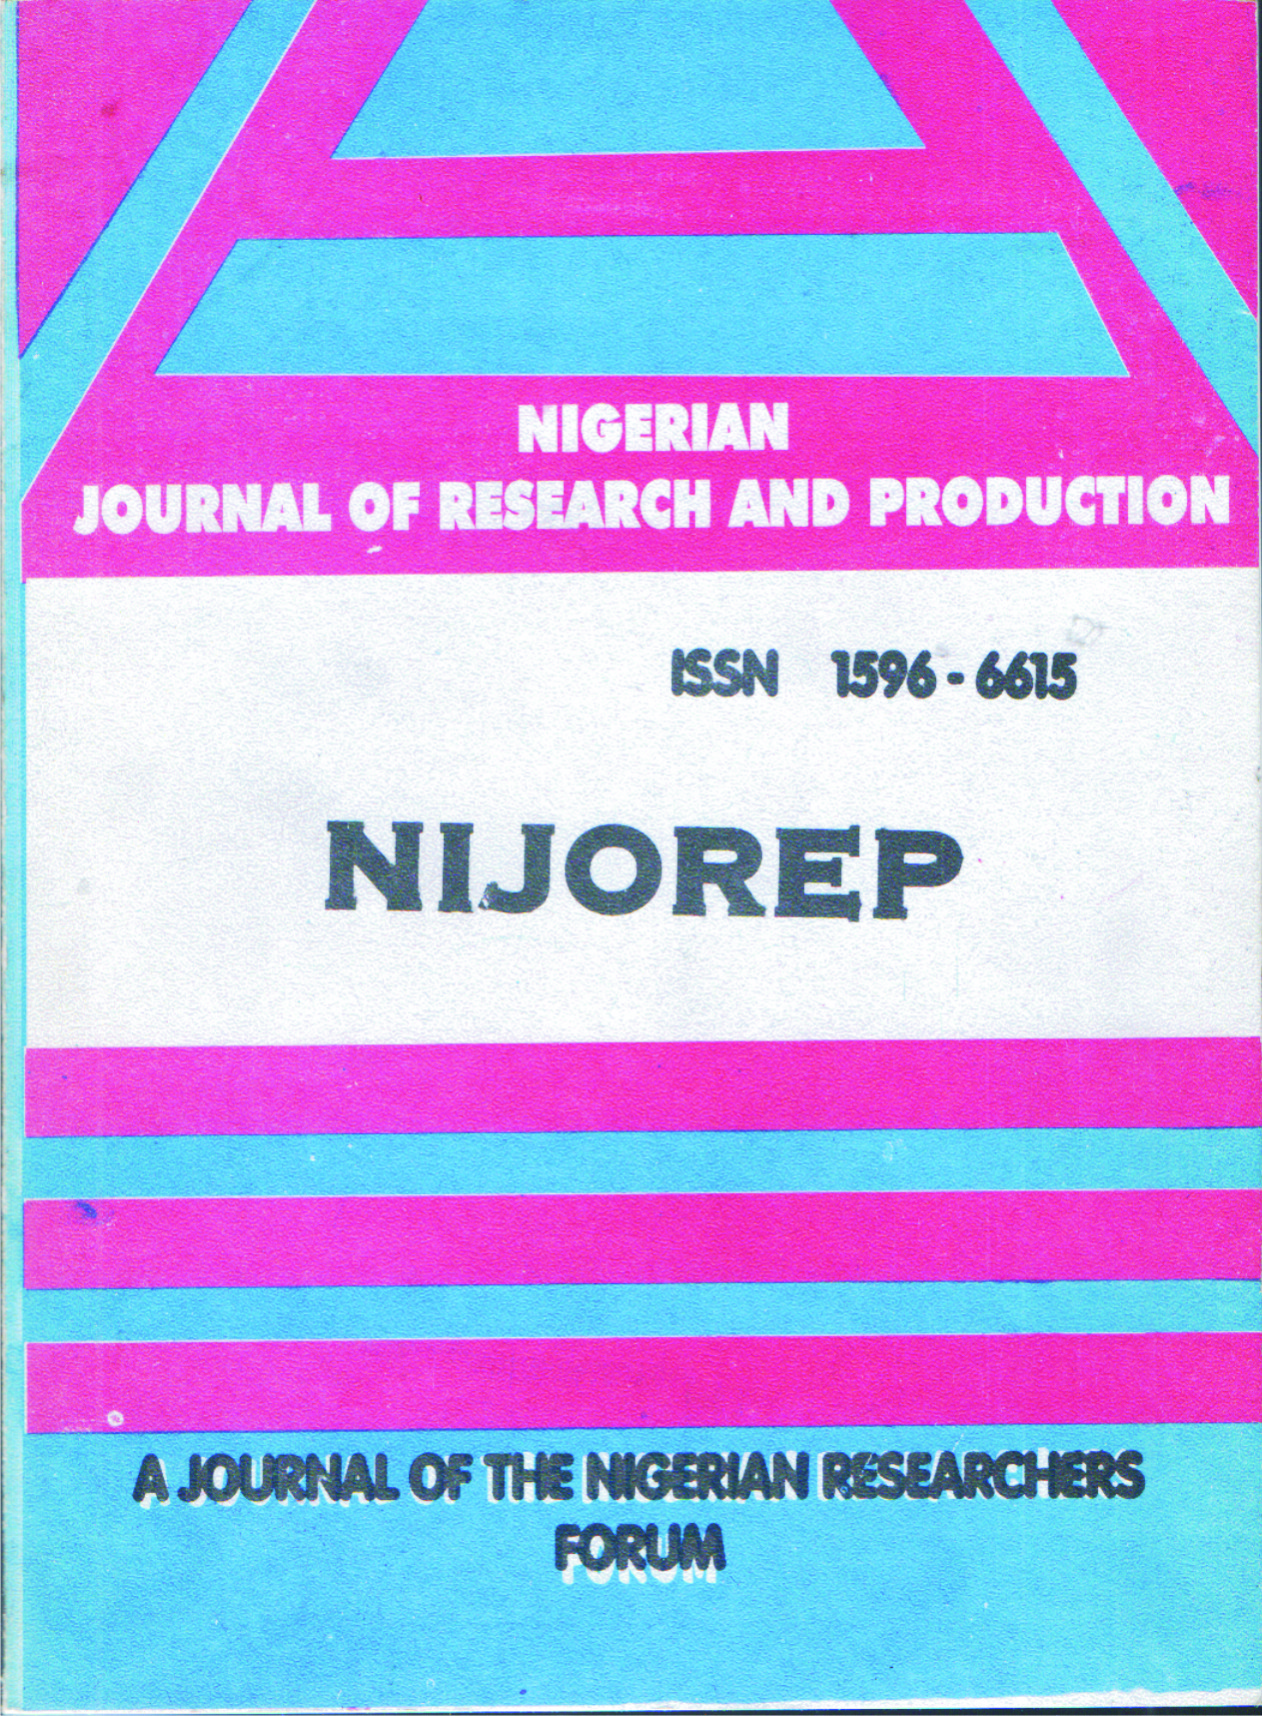 About Nigerian Journal of Research and Production